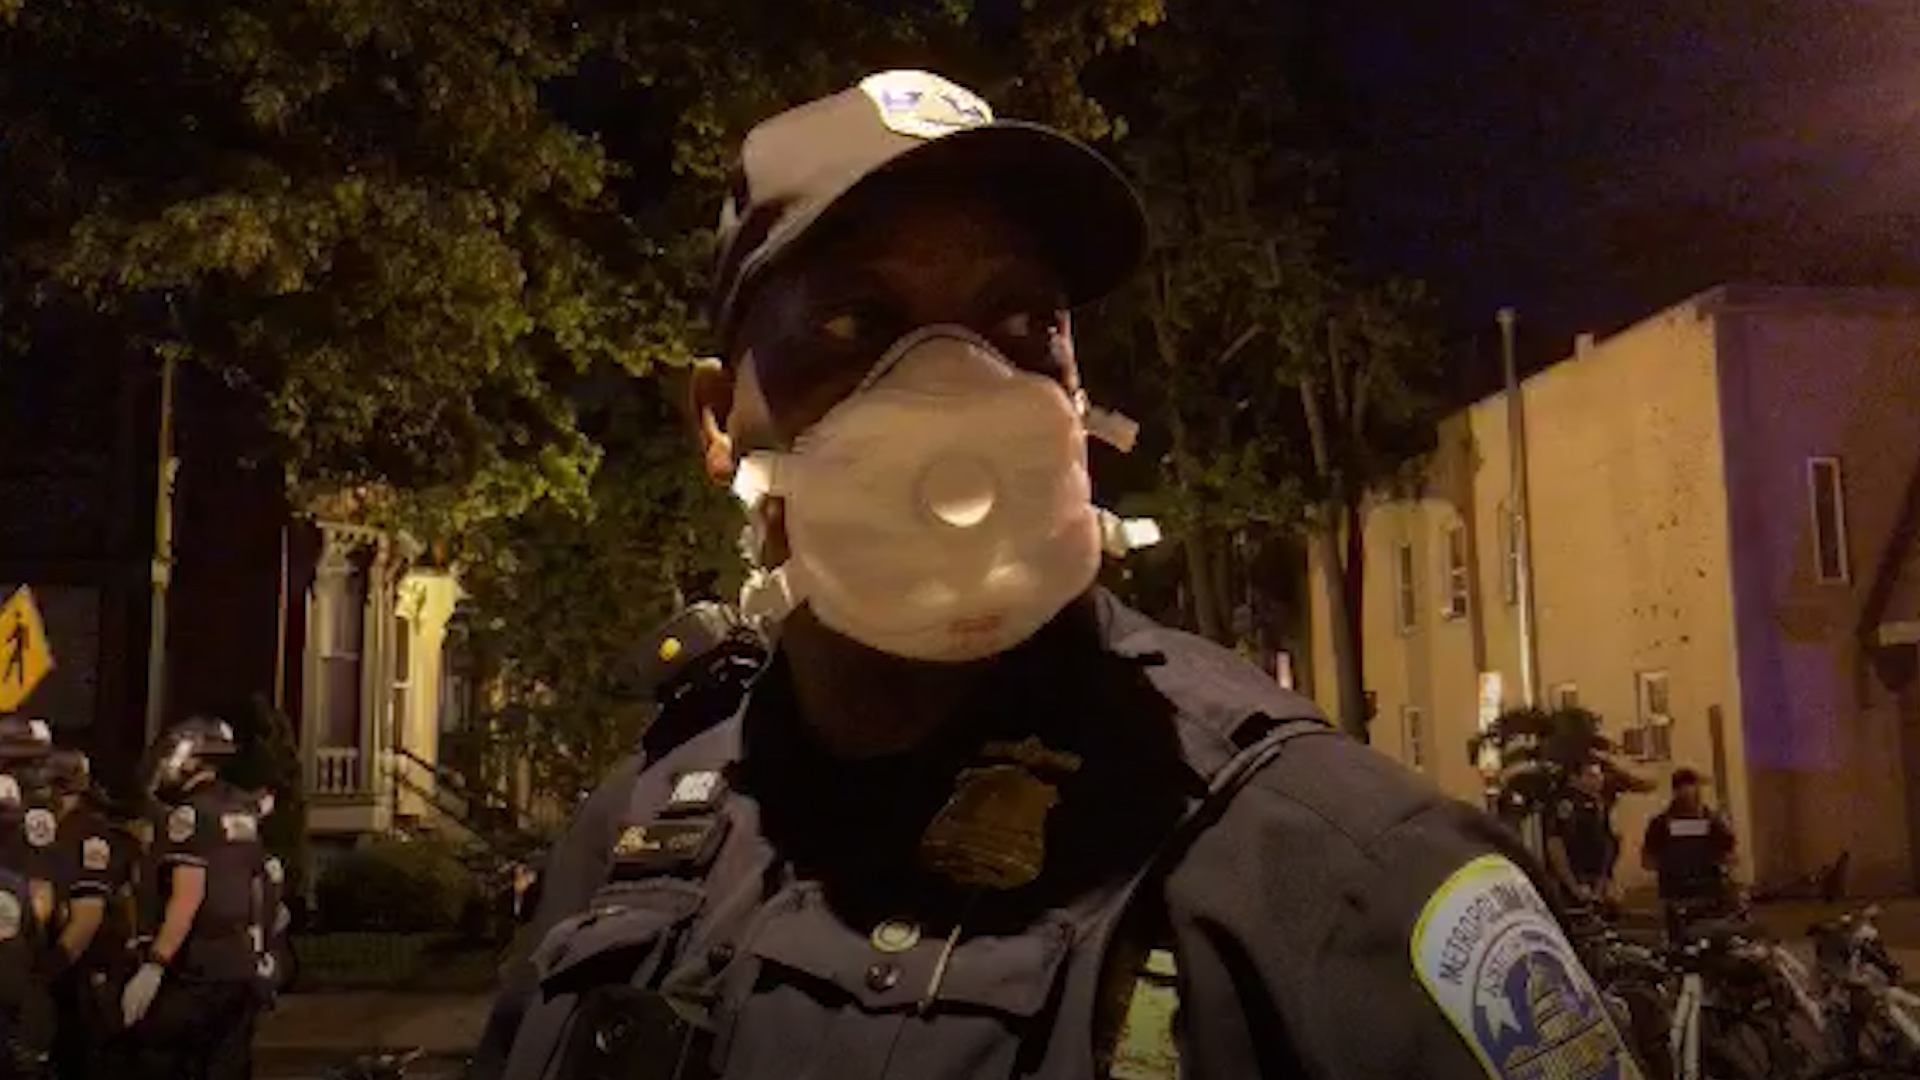 D.C. police officer to protesters: If I didnt think change was possible, I would just give up